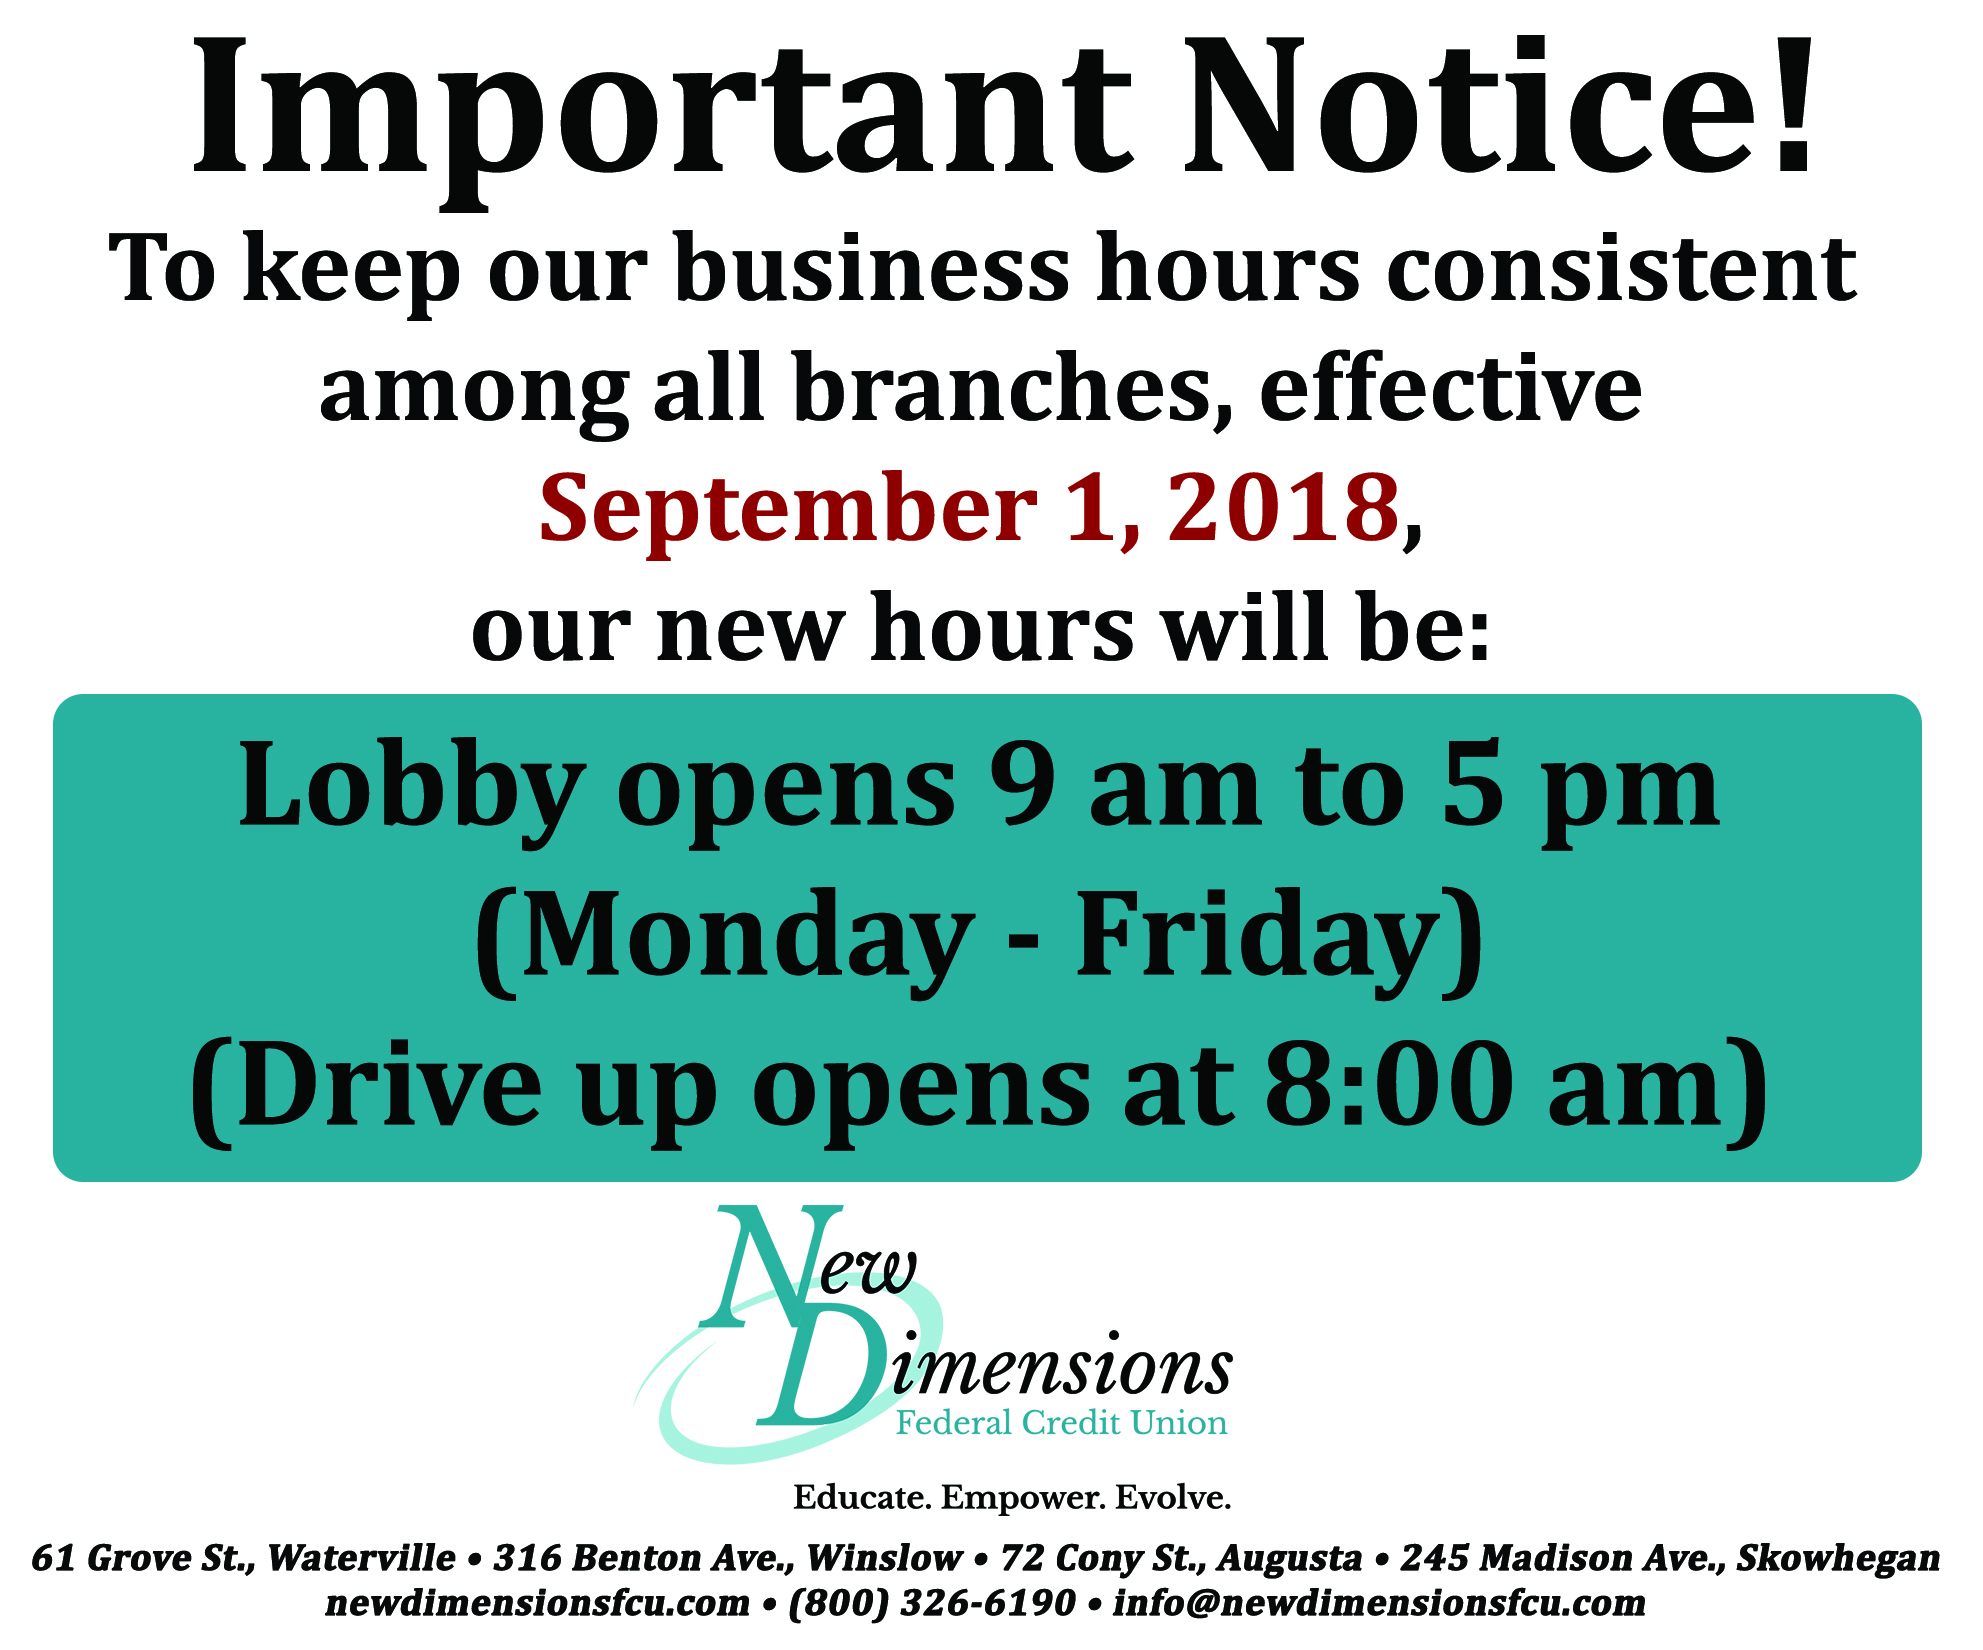 Photo Of New Business Hours At NDFCU. 9-5pm, Drive Up Opens At 8am